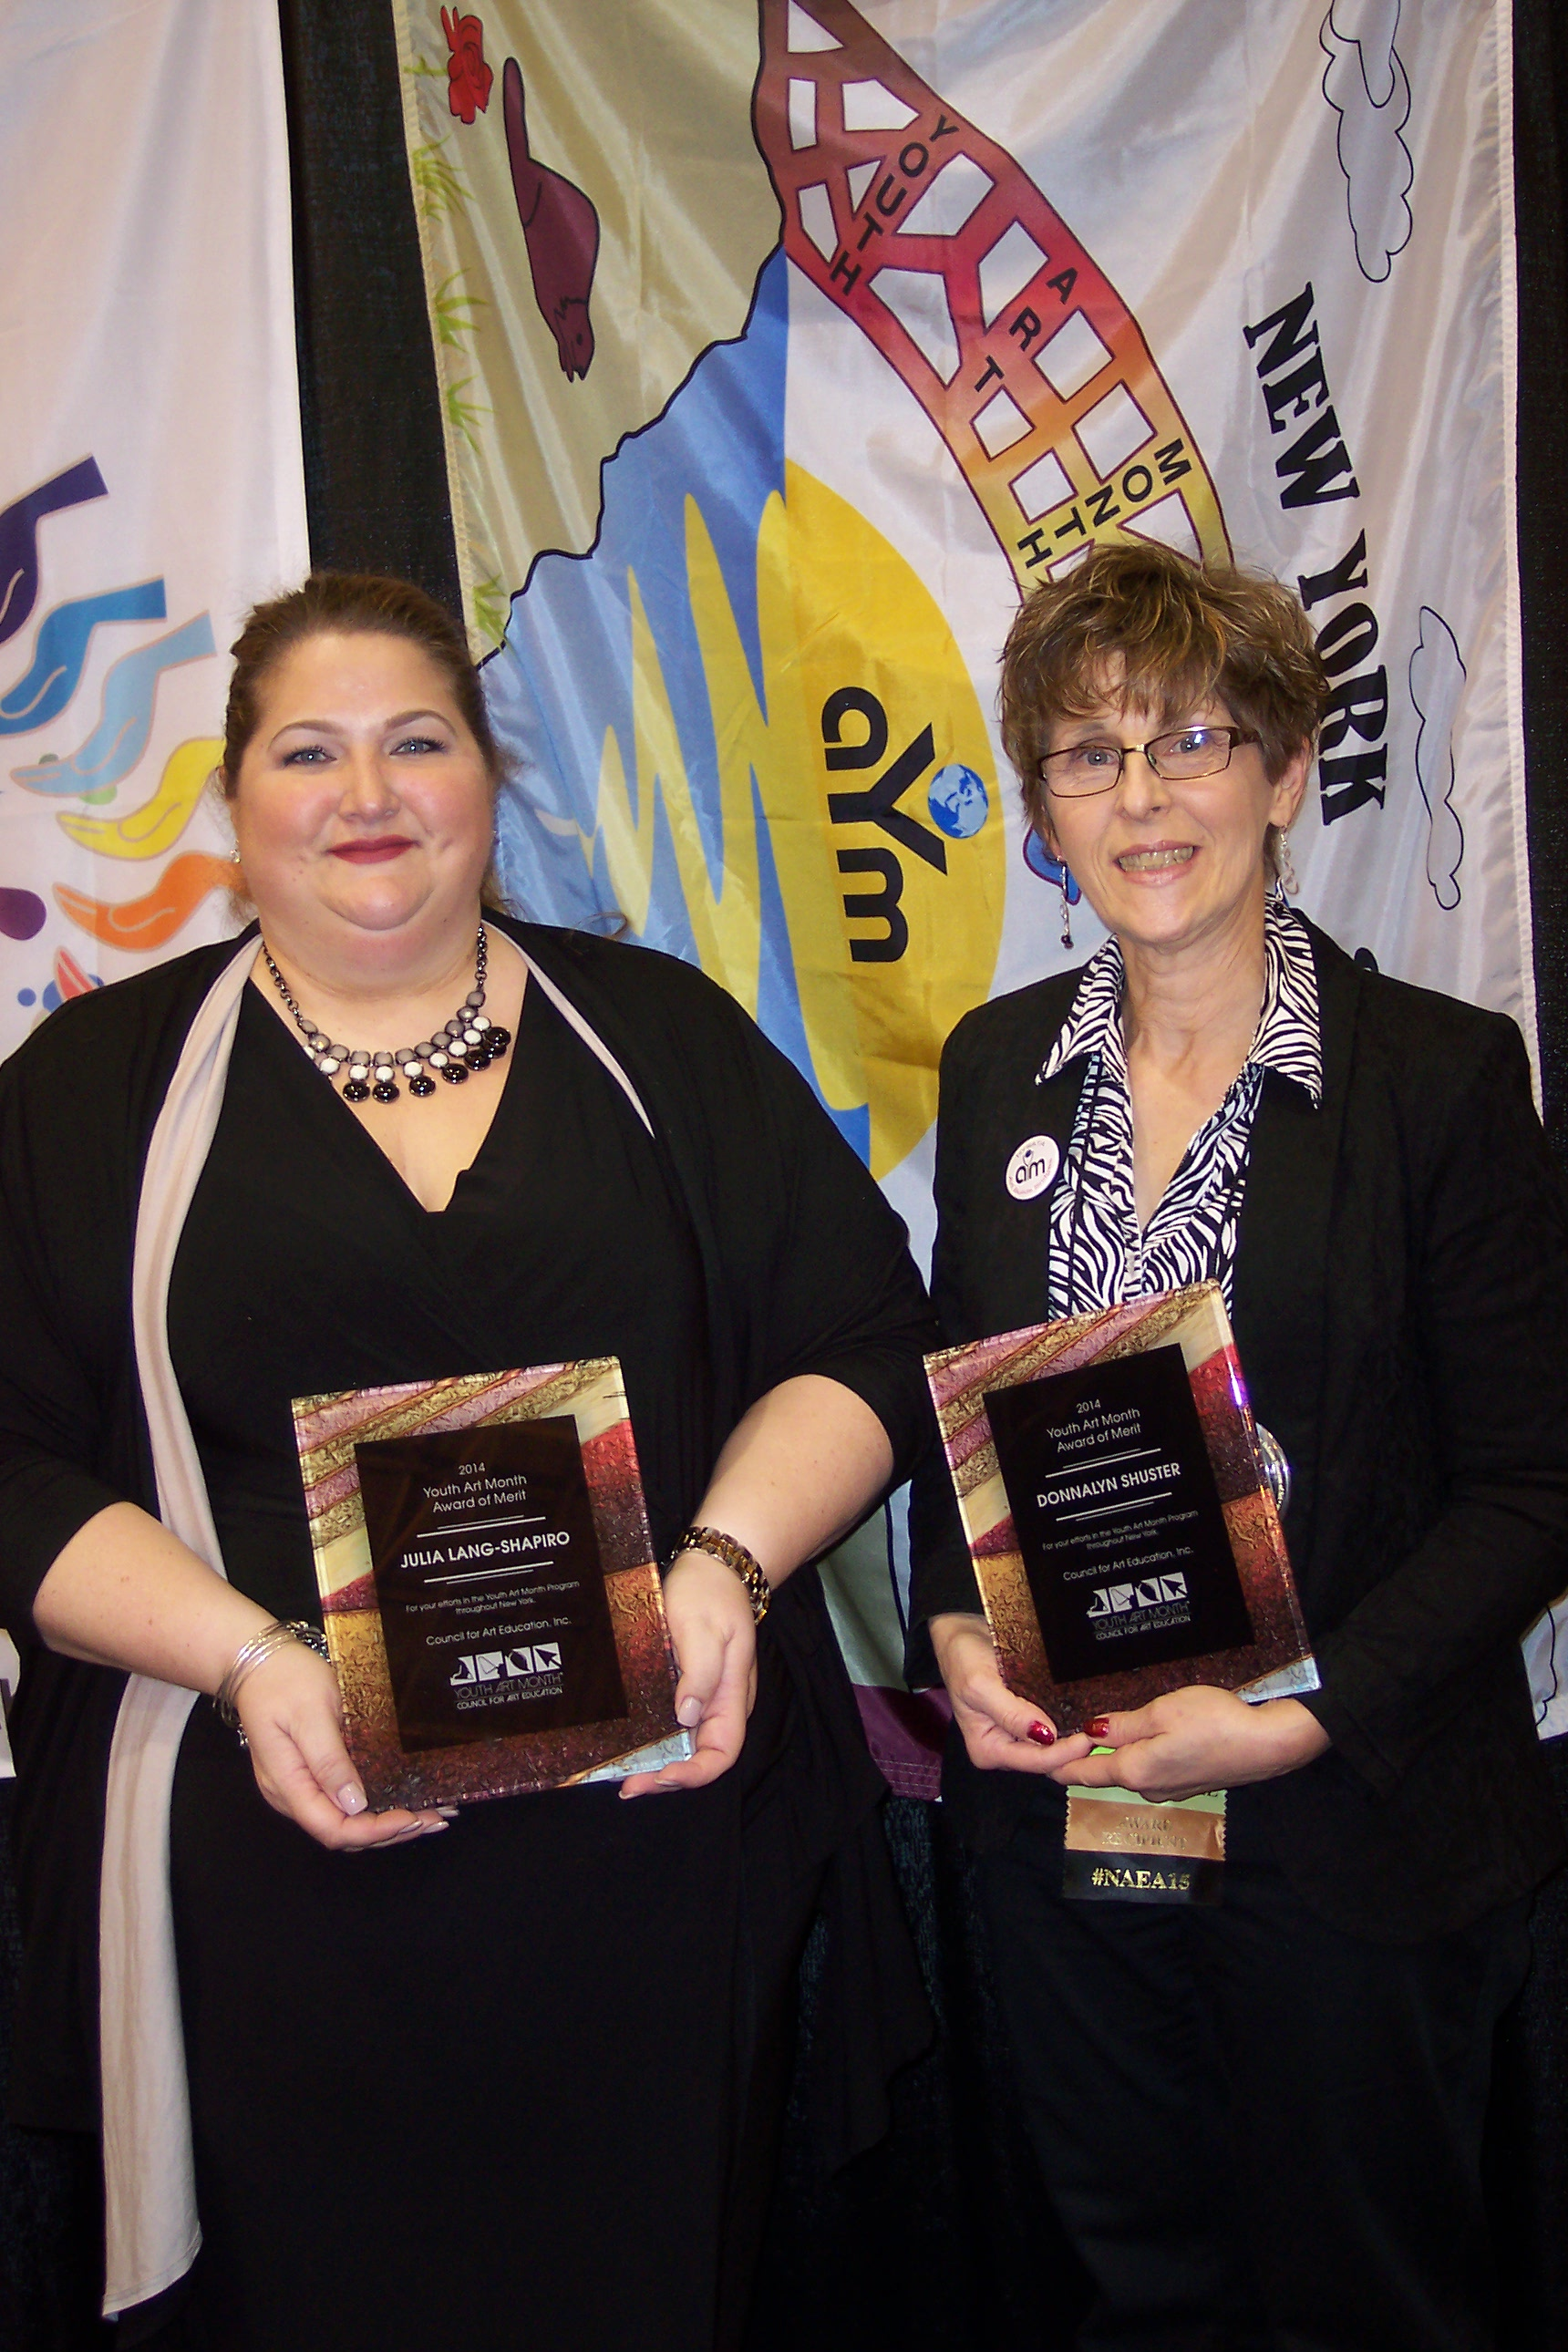 YAM 2015 Awards at the NAEA Conference, New Orleans